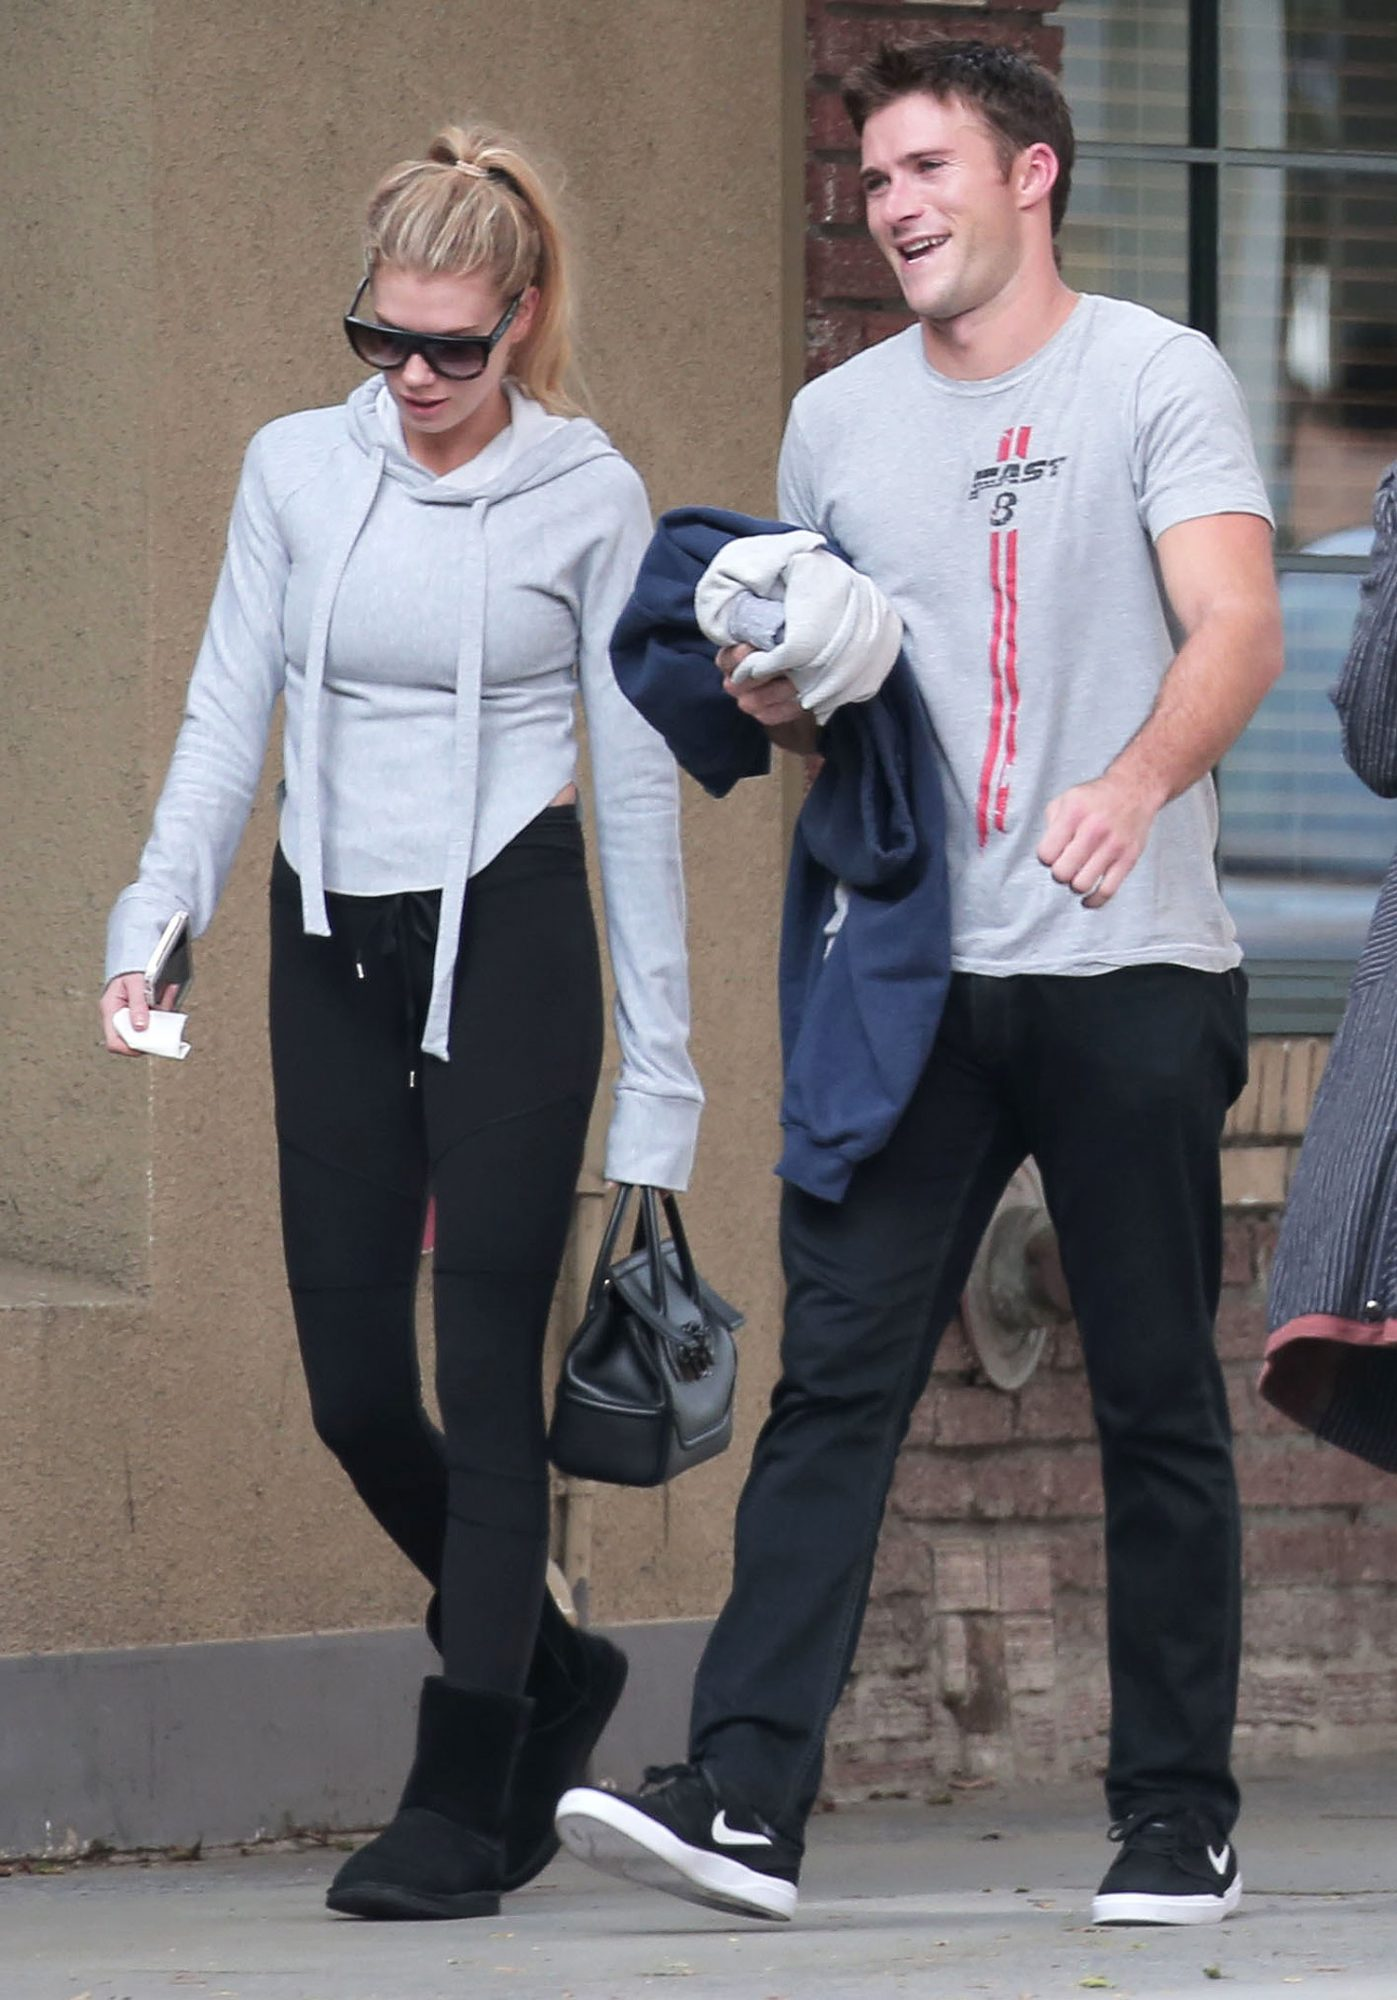 EXCLUSIVE: Just friends? Charlotte McKinney and Scott Eastwood are matching as they are spotted hanging out together the morning after Christmas